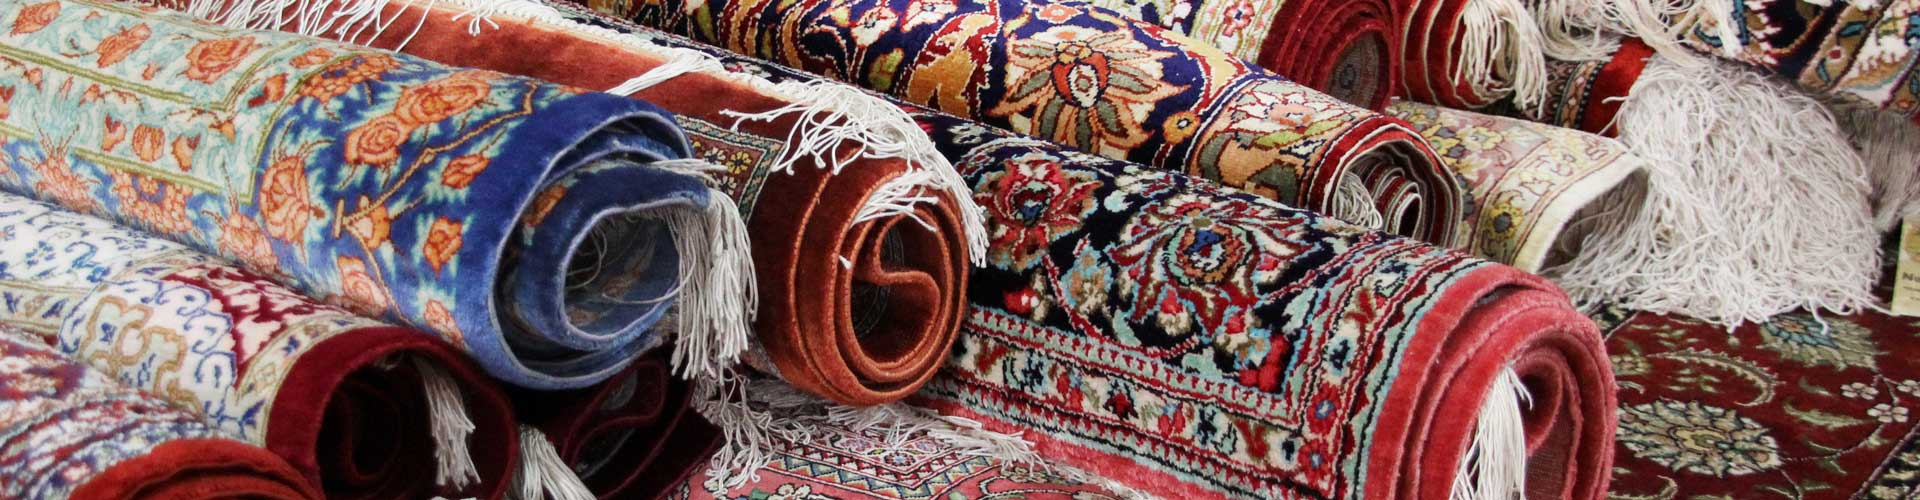 Armenian Wool Rug Cleaning Toronto Drop Off Available